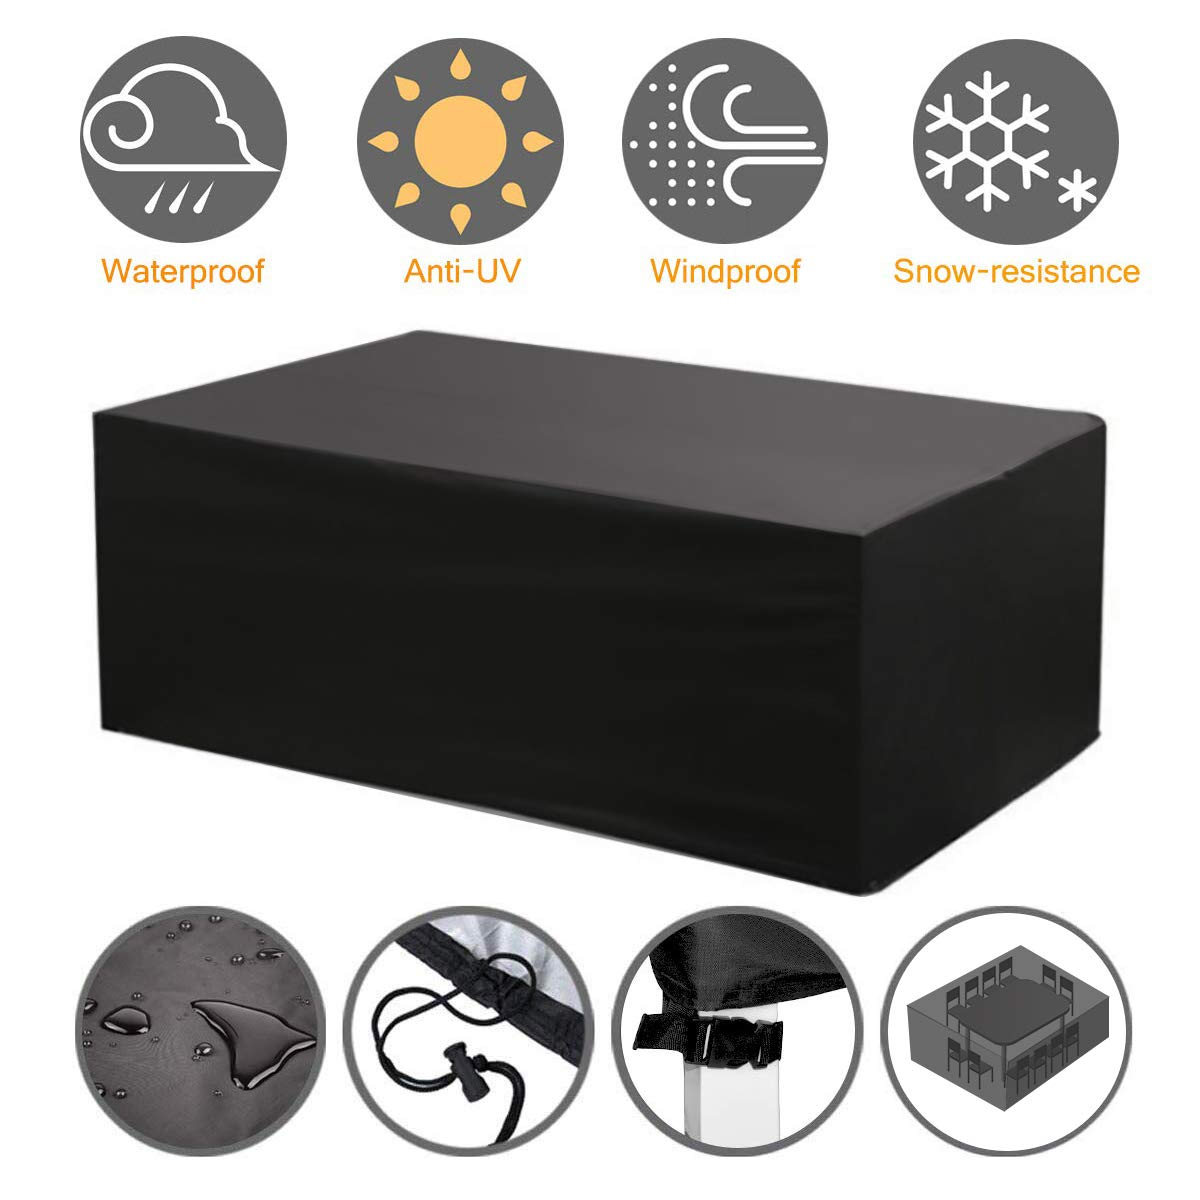 NASUM Patio Furniture Cover Set, 315x160x74cm Outdoor Lounge for Sofa Dining Table and Electrical Equipment With Waterproof and UV-Resistent 420D Oxford Cloth(Black and Silver) black xl